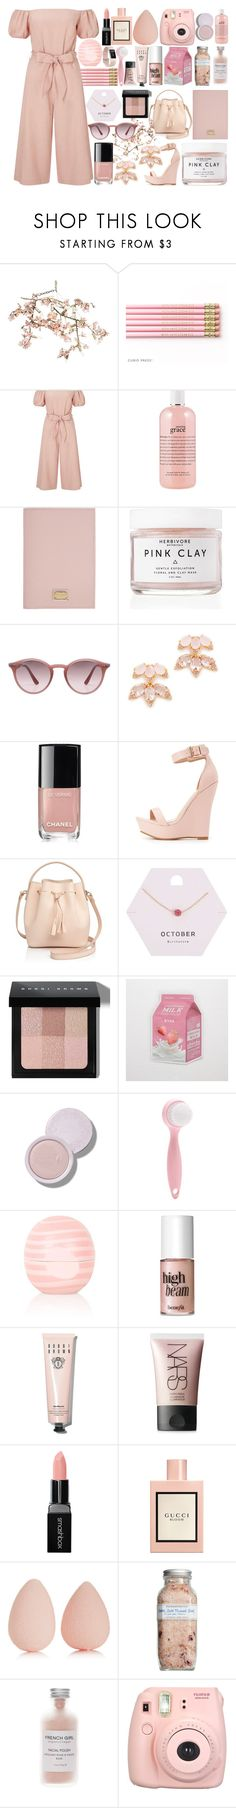 """""""Rose Water"""" by andreab6 ❤ liked on Polyvore featuring Canopy Designs, Miss Selfridge, philosophy, Dolce&Gabbana, Herbivore, Ray-Ban, Kate Spade, Chanel, Charlotte Russe and Céline Lefébure"""